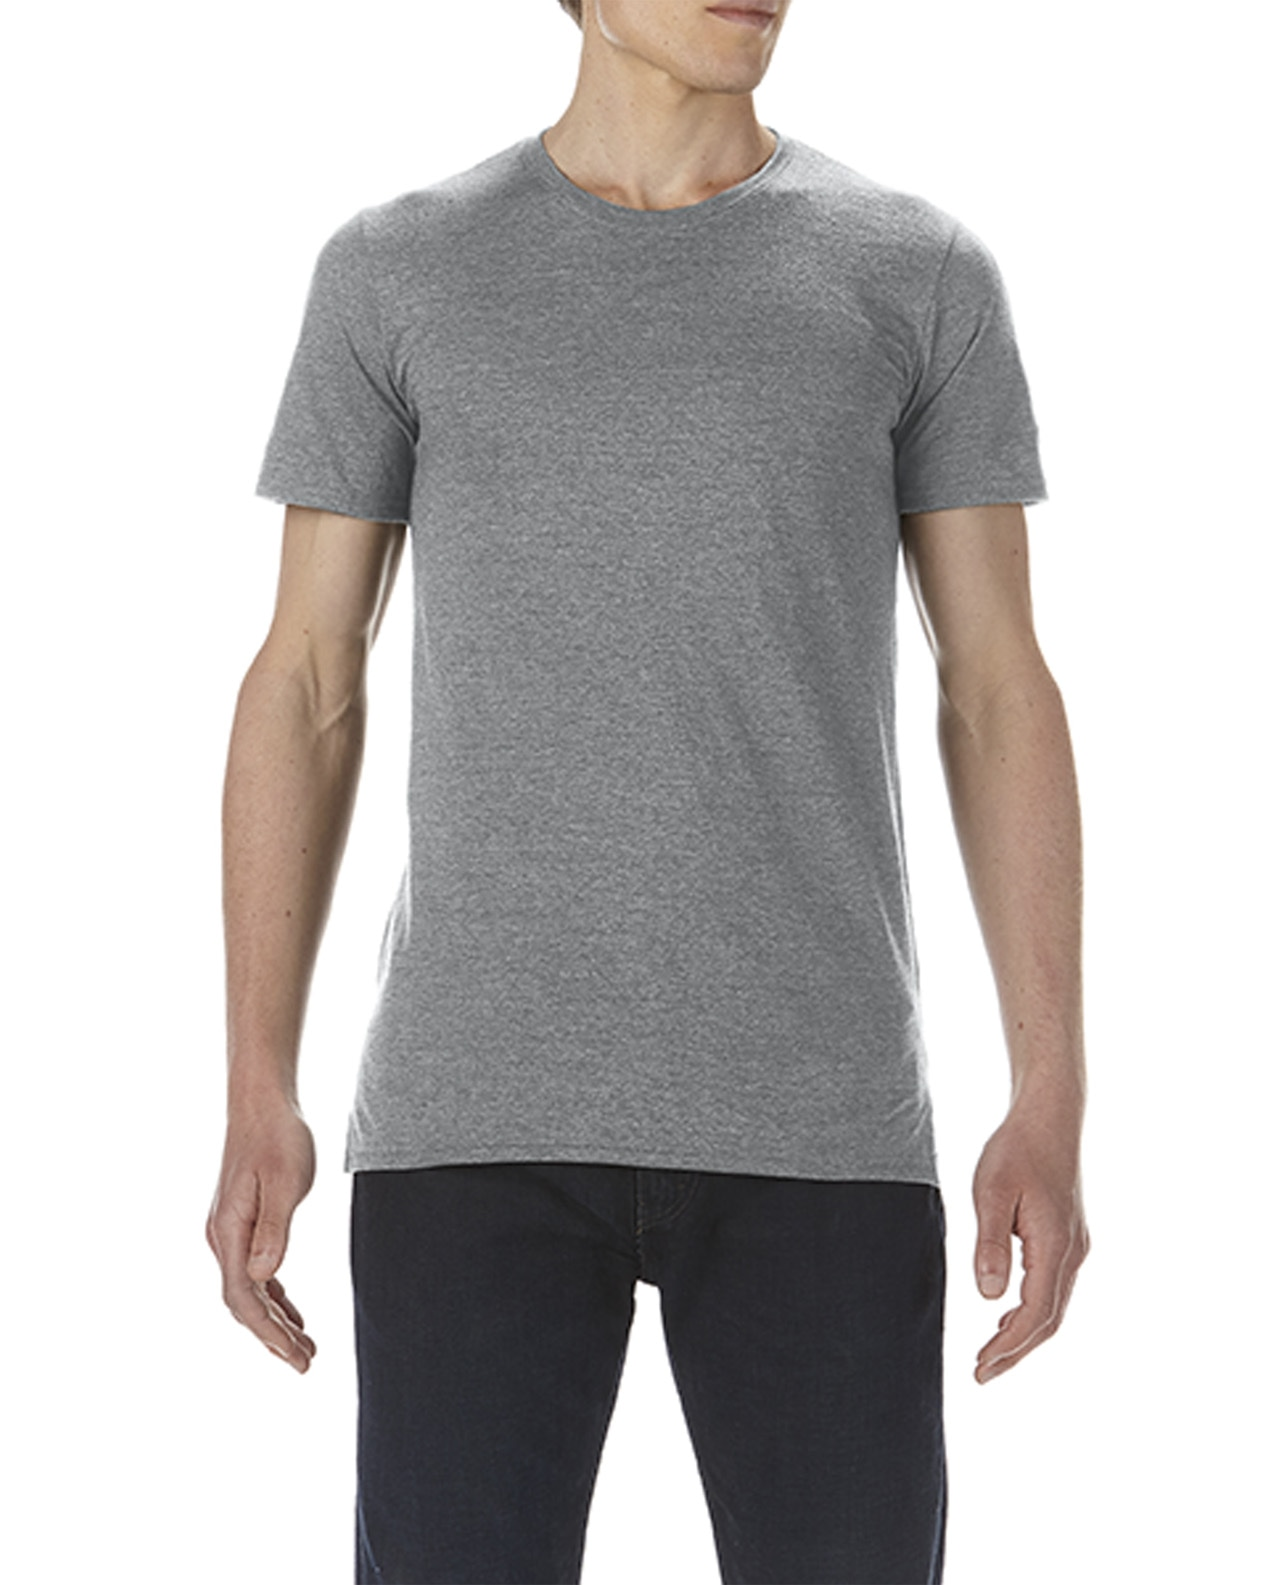 f43a4db796c4 5624 | 4.3 oz/yd² | Adult Lightweight Long & Lean Tee | Anvil